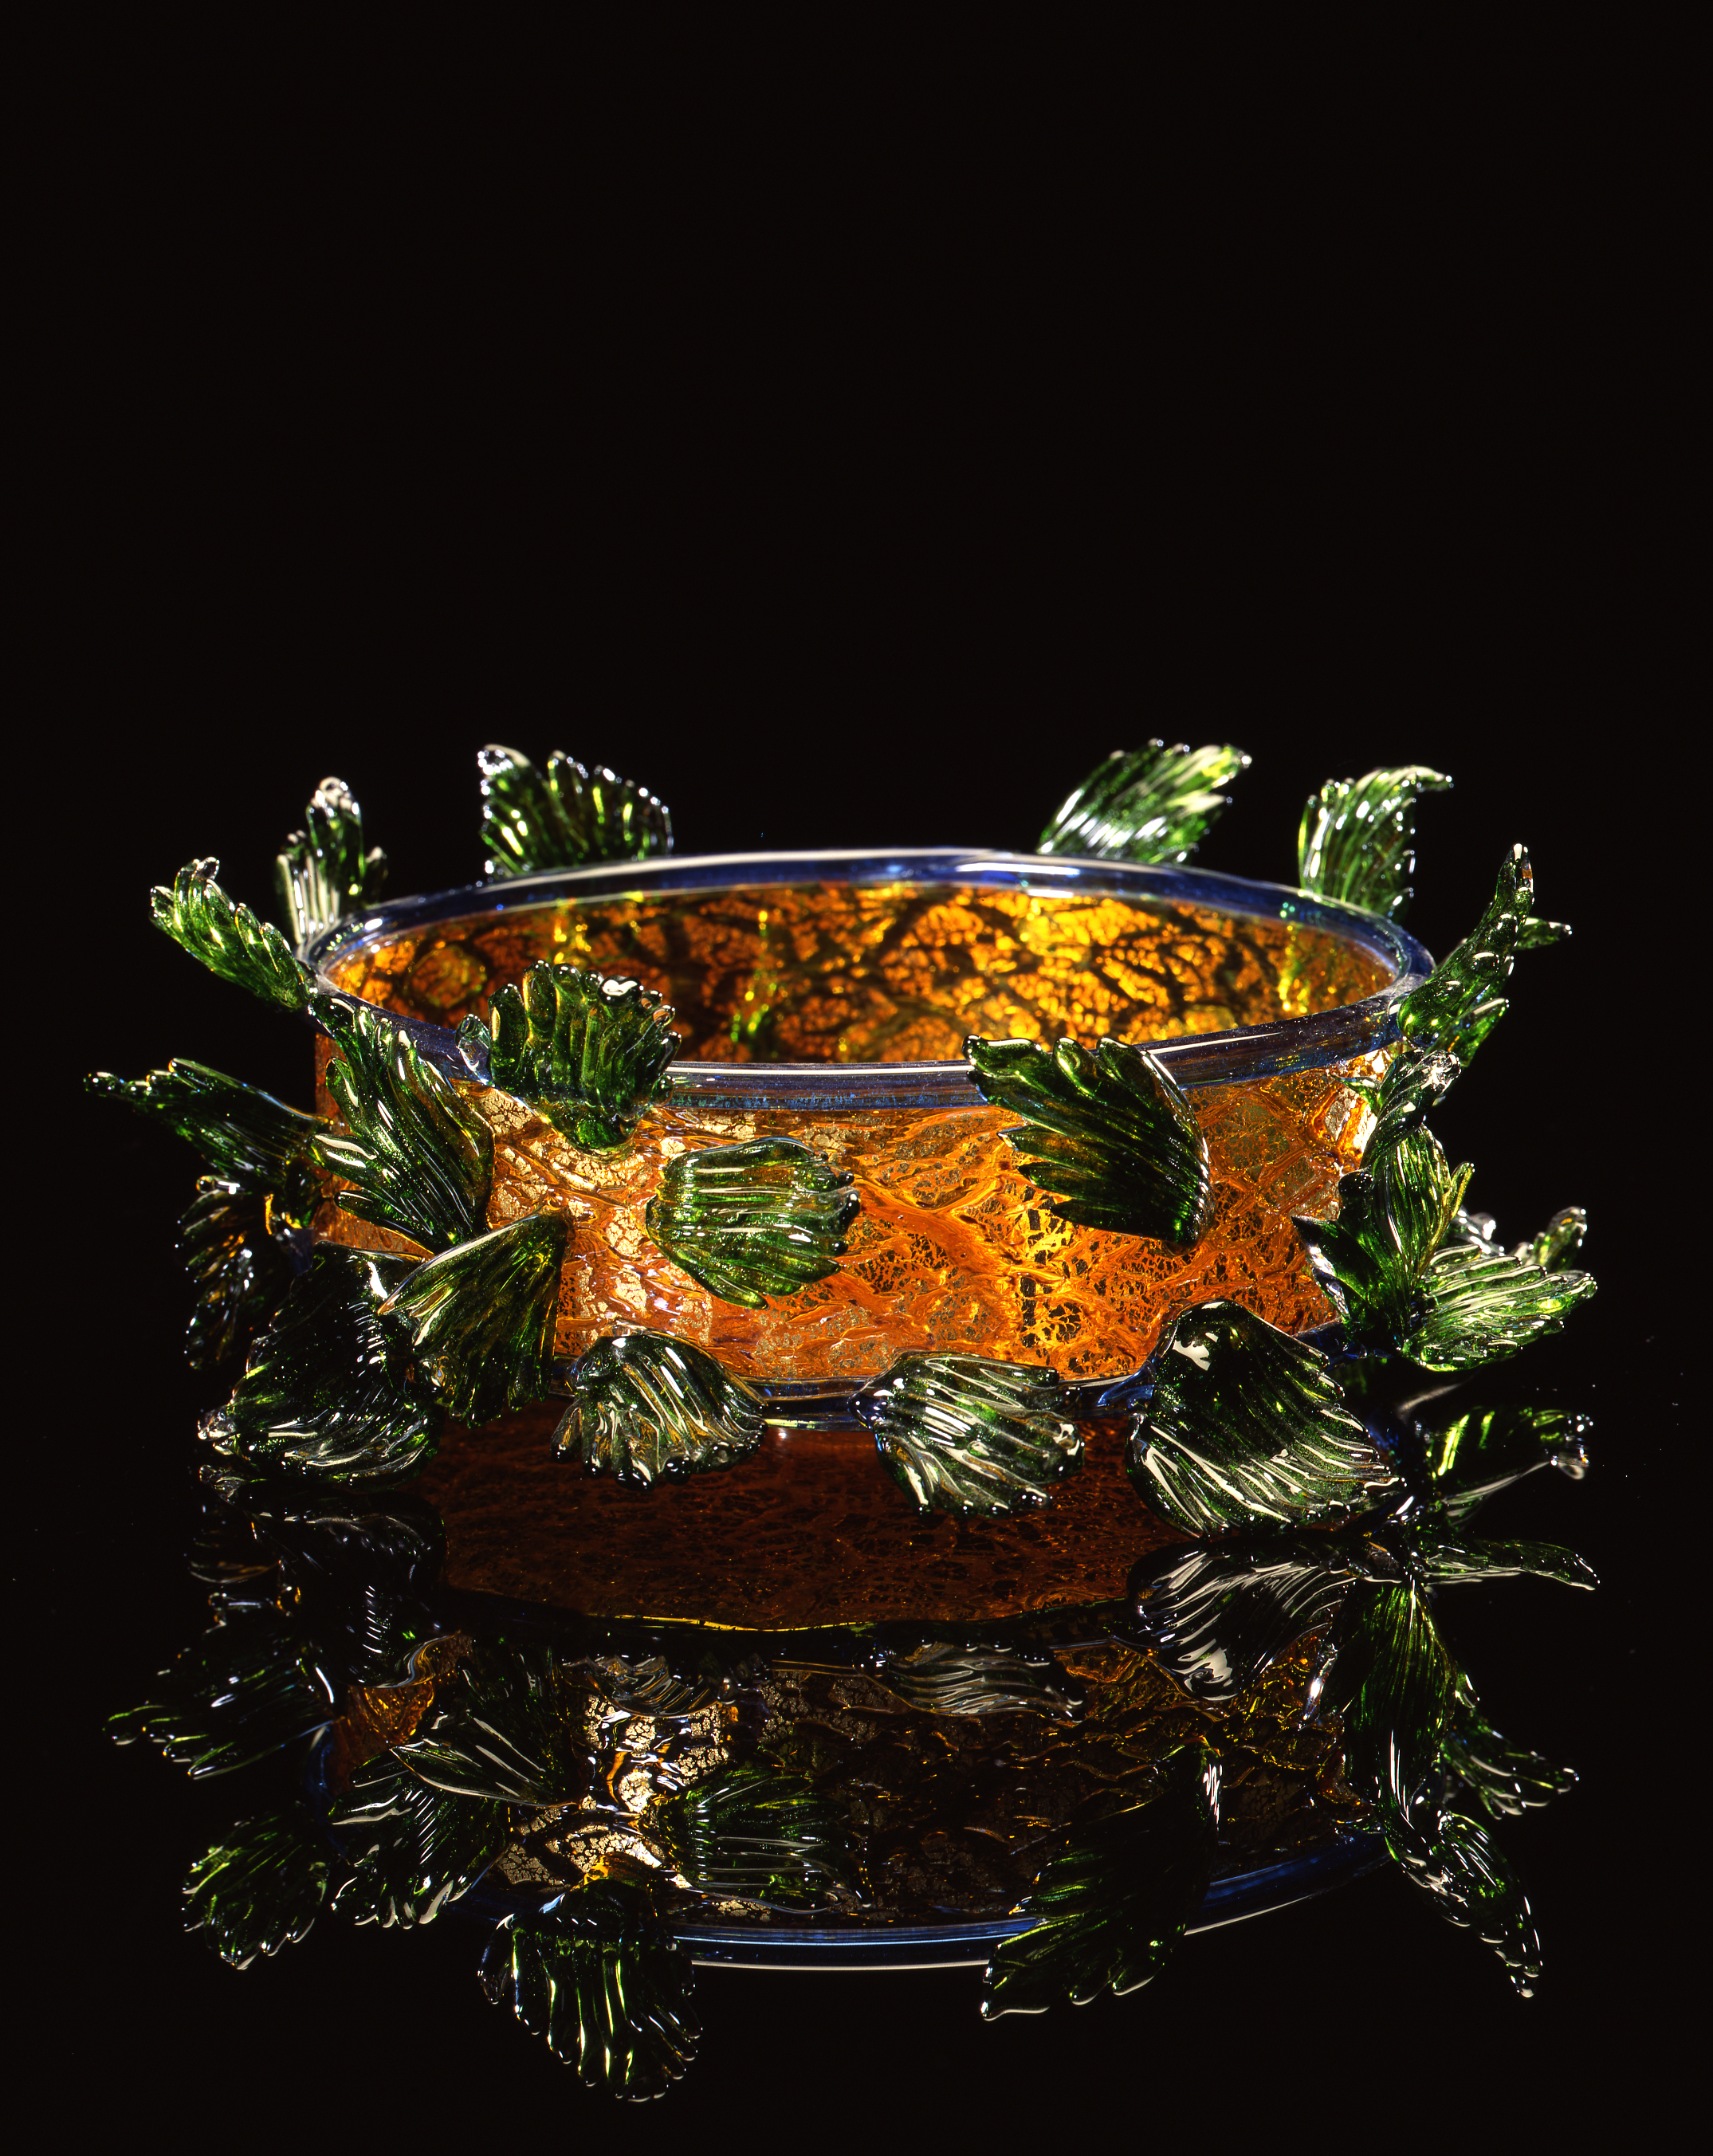 Dale Chihuly,  Golden Brown Piccolo Venetian with Green Leaves  (1994, glass, 4 x 10 x 10 inches)